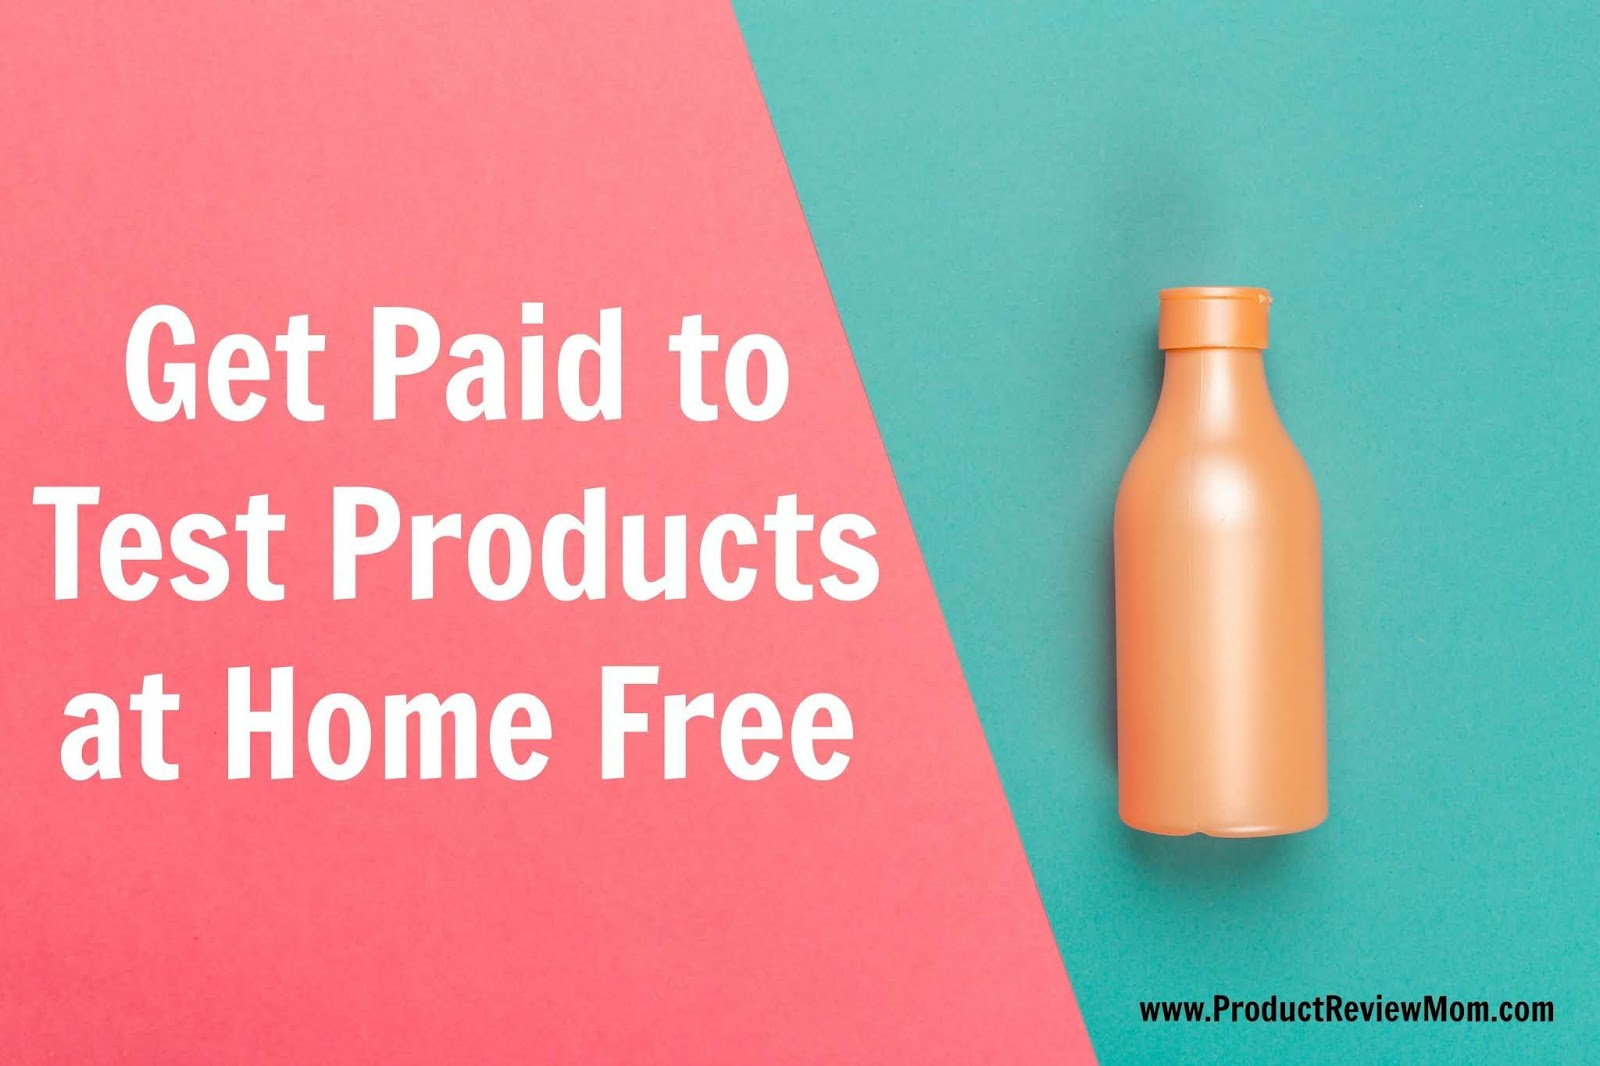 How to Become a Paid Product Review Tester at Home Free?